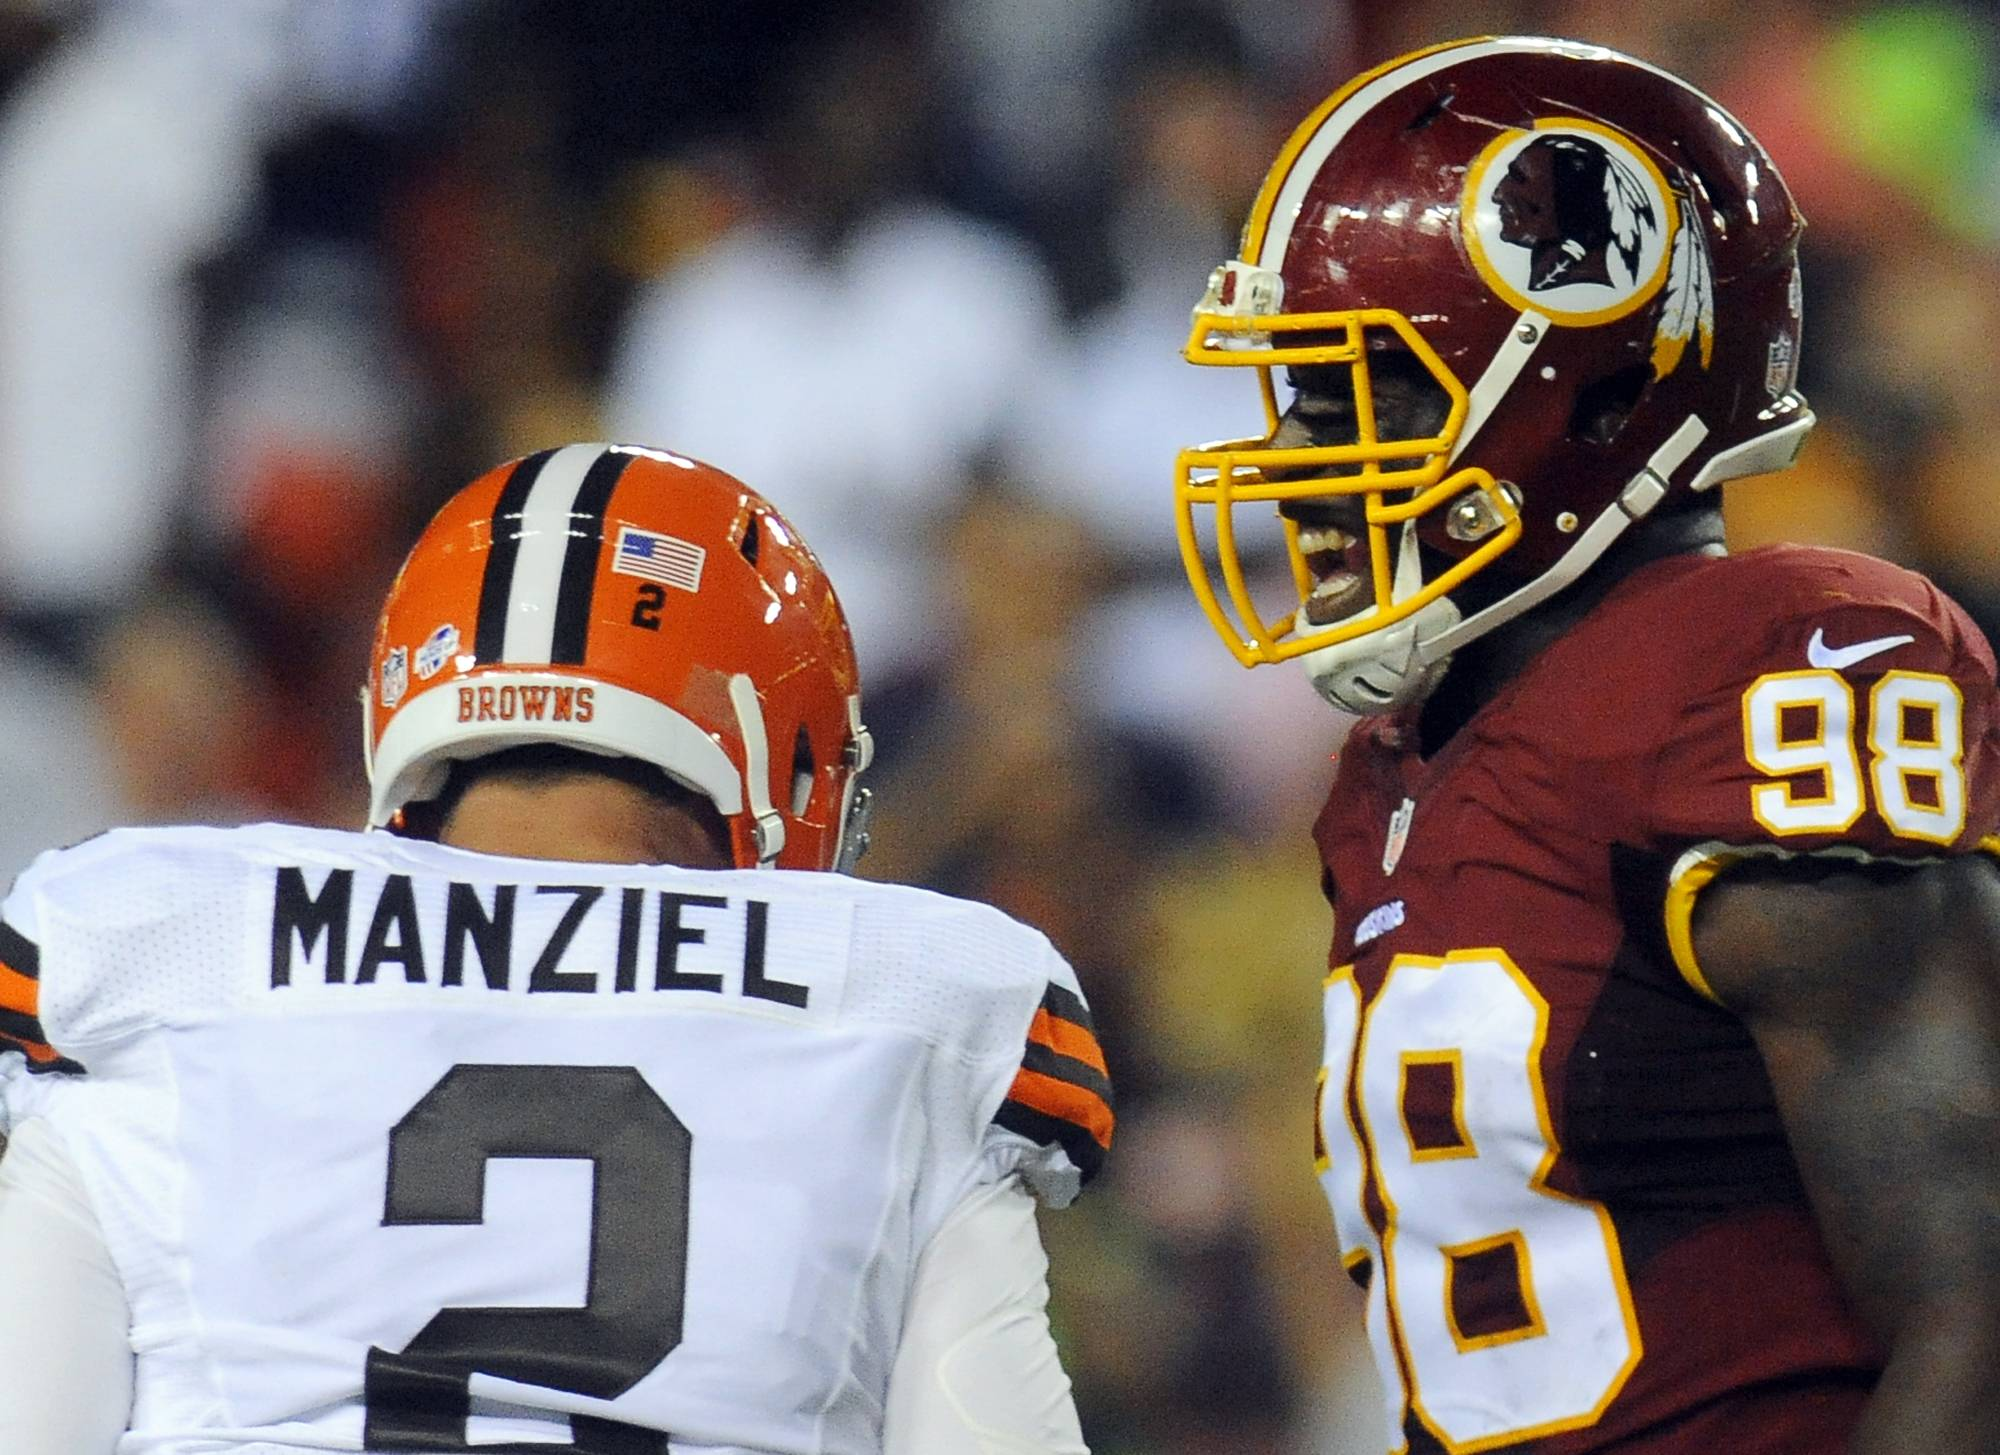 Washington linebacker Brian Orakpo (98) reacts after Cleveland quarterback Johnny Manziel was sacked during Monday's preseason game in Landover, Md.